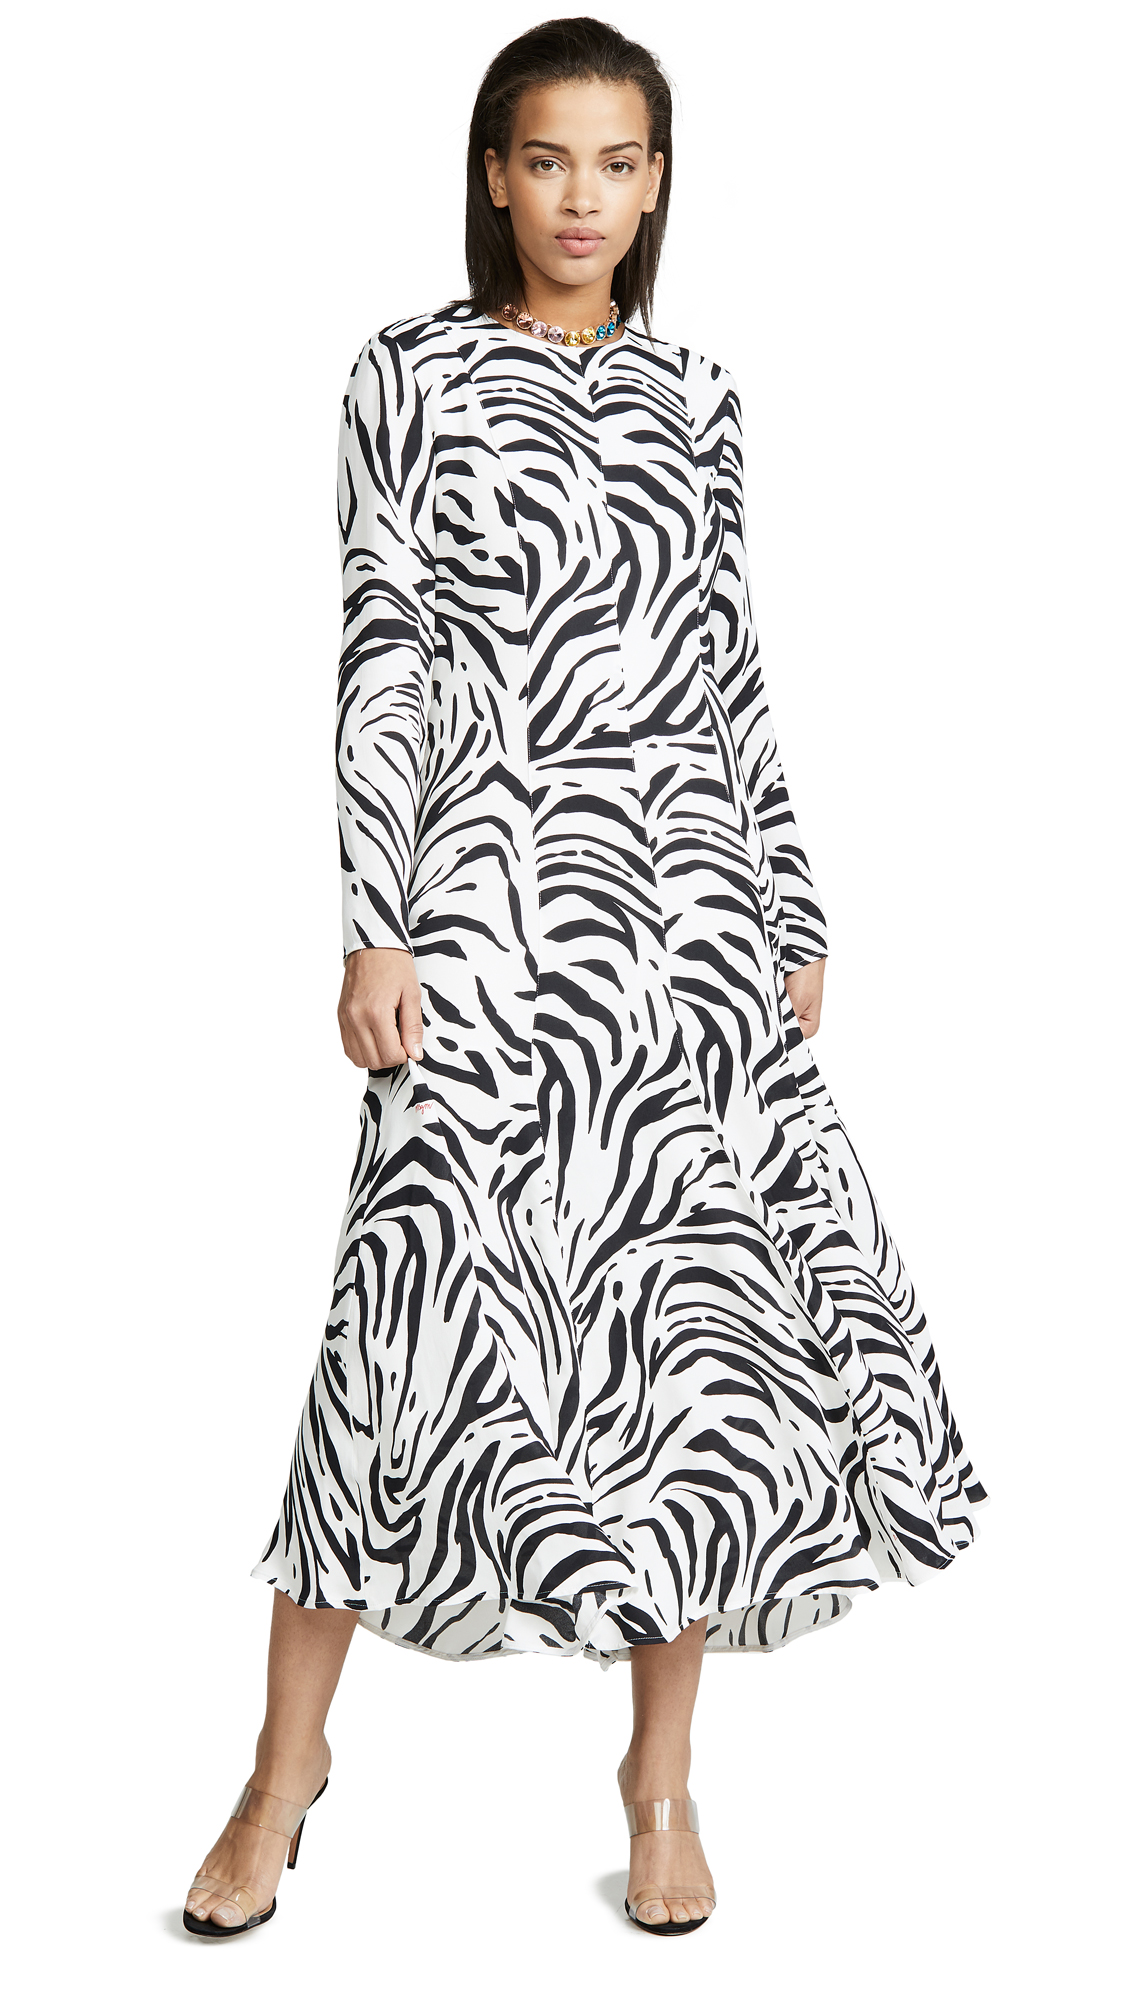 cffdbdd1ff2 Msgm Zebra Maxi Dress In Black White